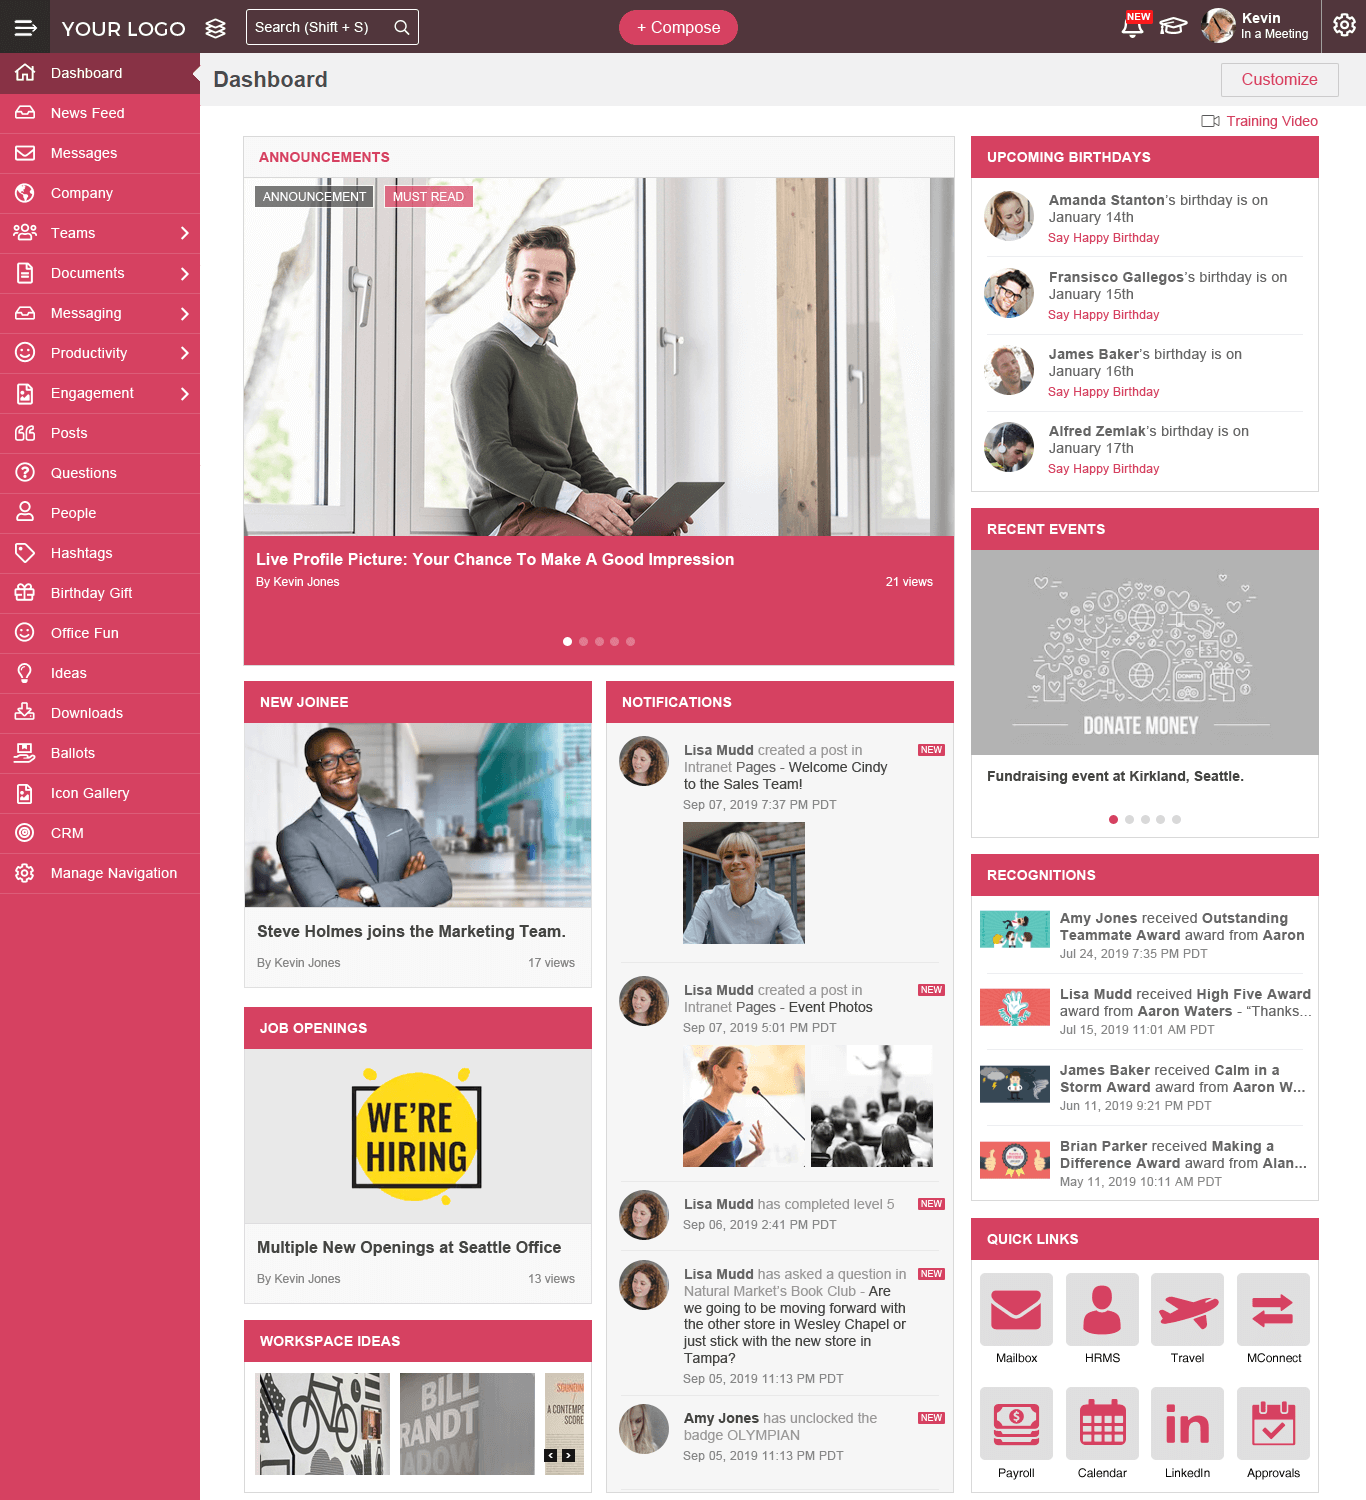 MangoApps - Your Company Branded Intranet Design Samples